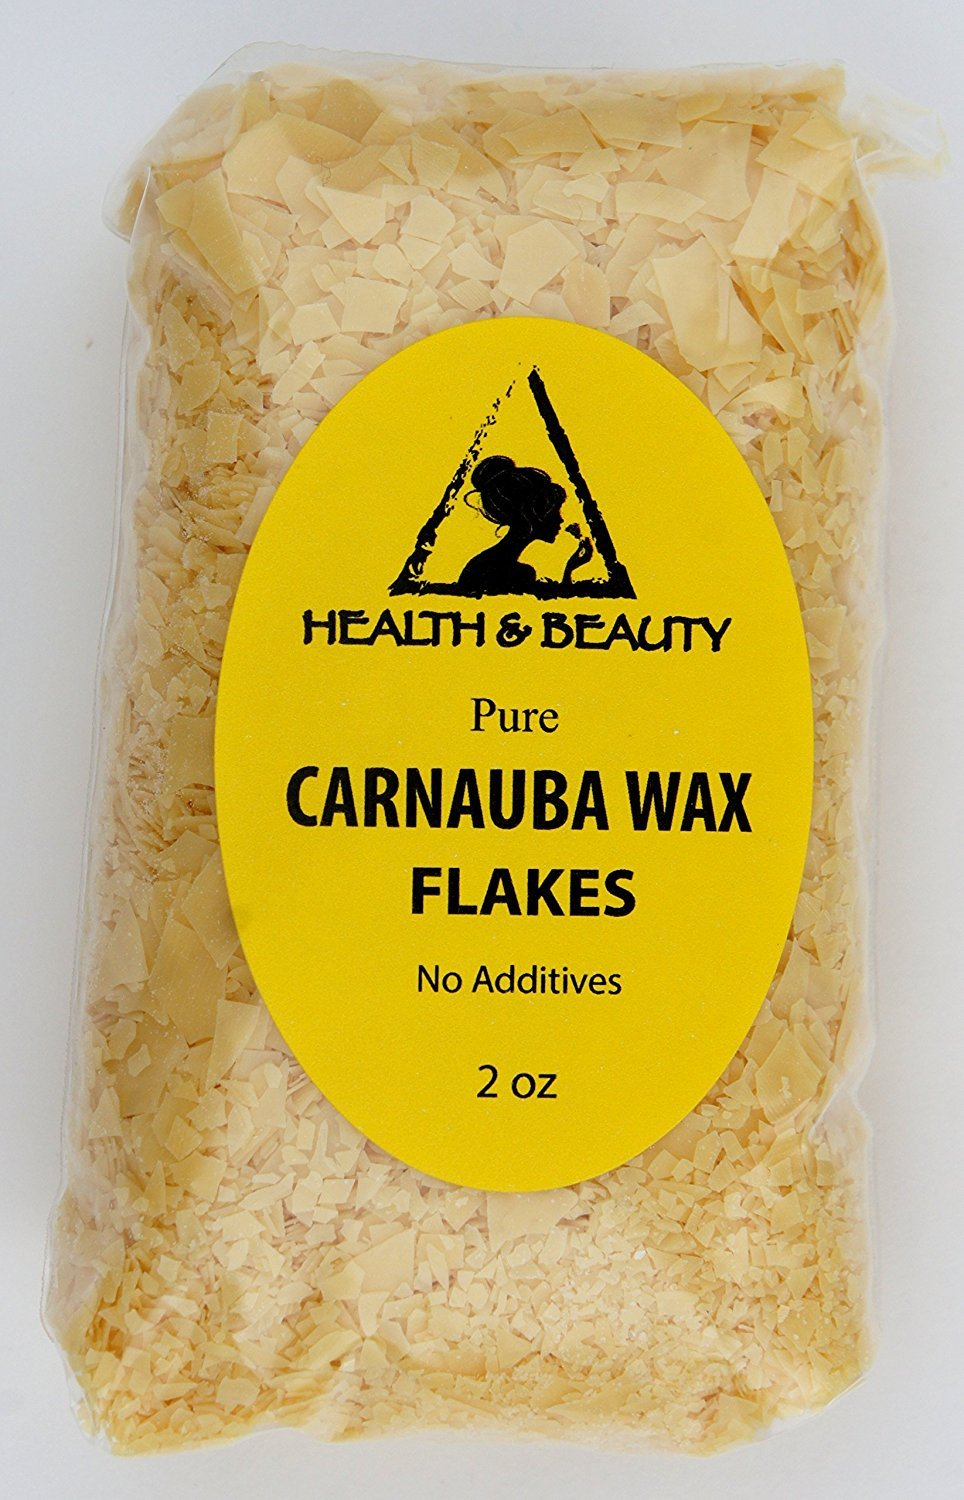 Carnauba Wax Organic Flakes Brazil Pastilles Beards Premium Prime Grade A 100% Pure 2 oz, 57 g H&B OILS CENTER Co. 4336841587